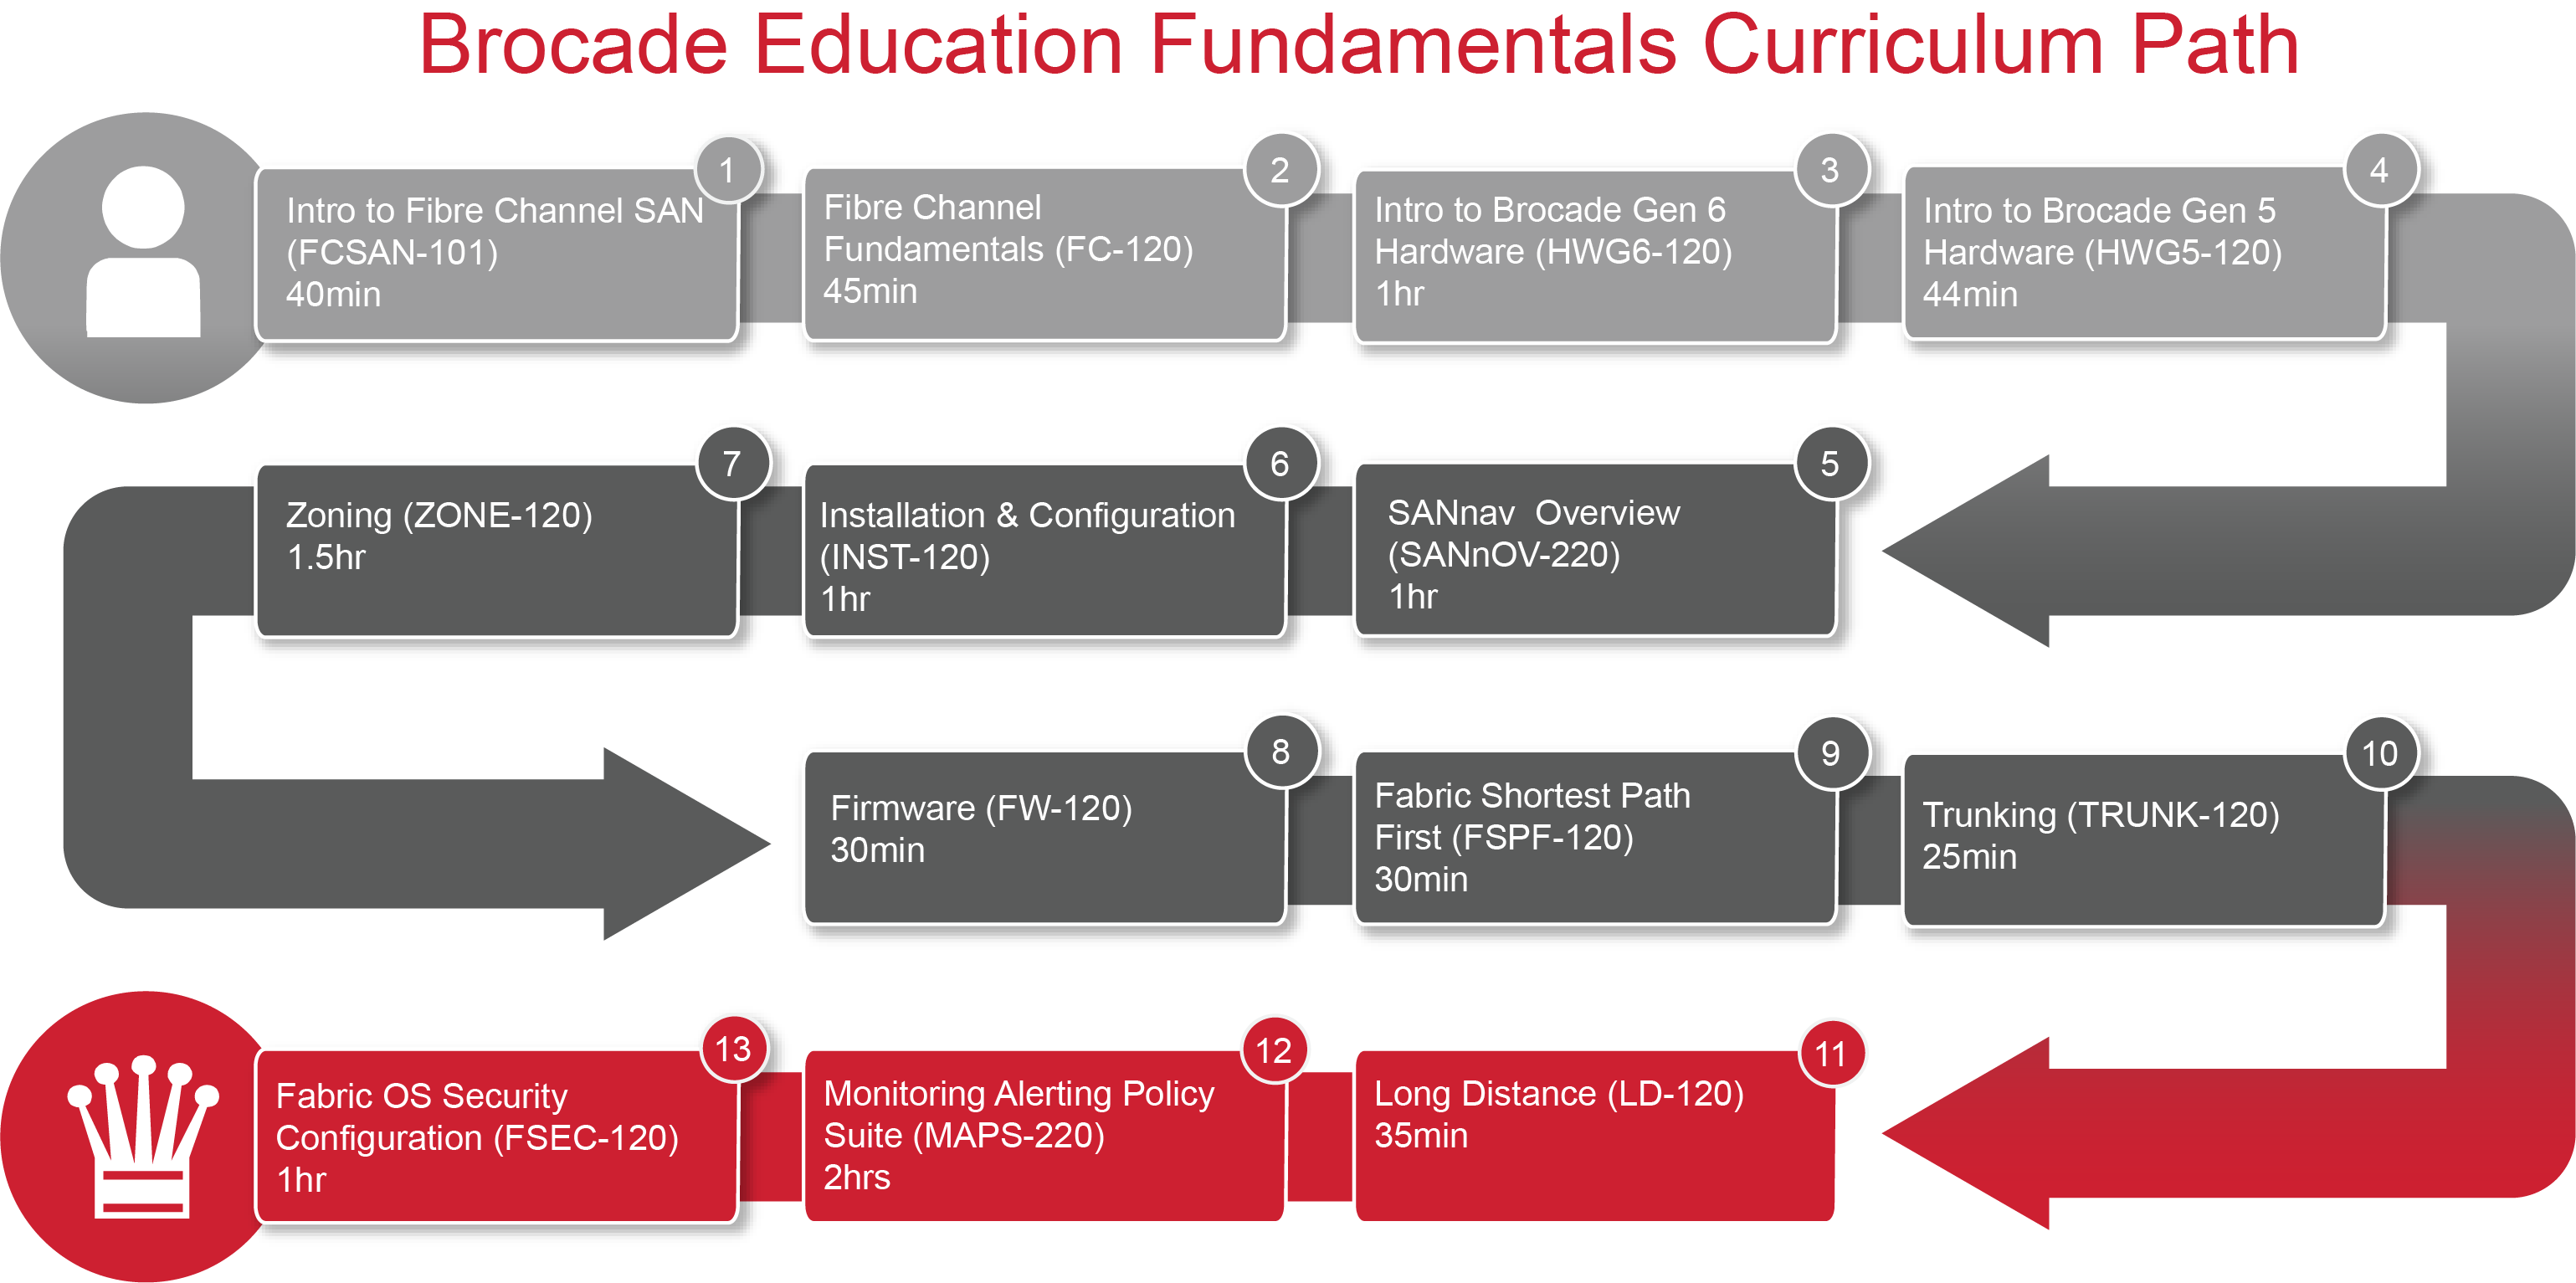 The Latest Online Training Courses from Brocade Education ...